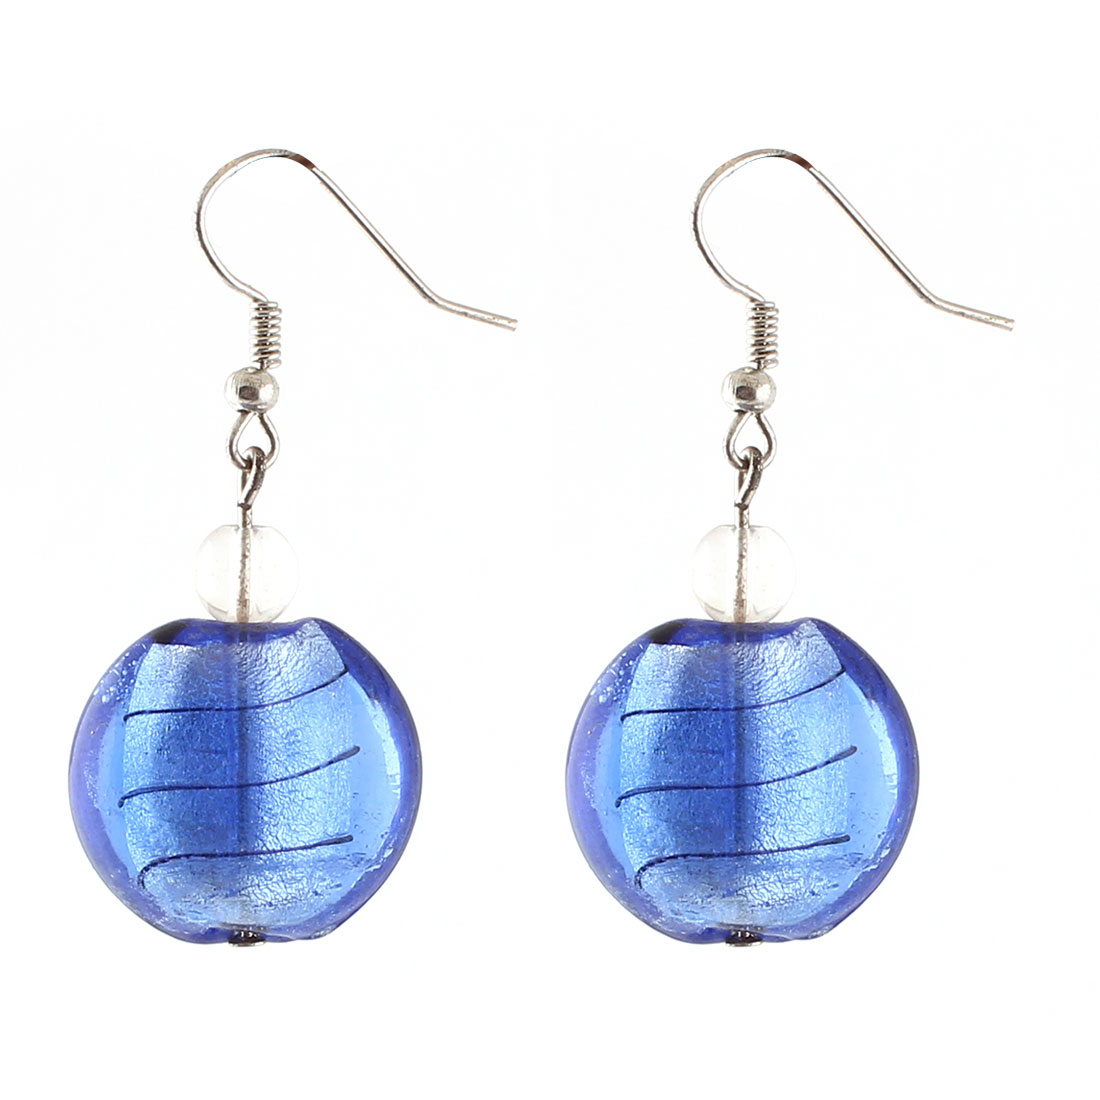 Lady Plastic Curve Press Dangling Oval Pendant Fish Hook Earrings Blue Pair